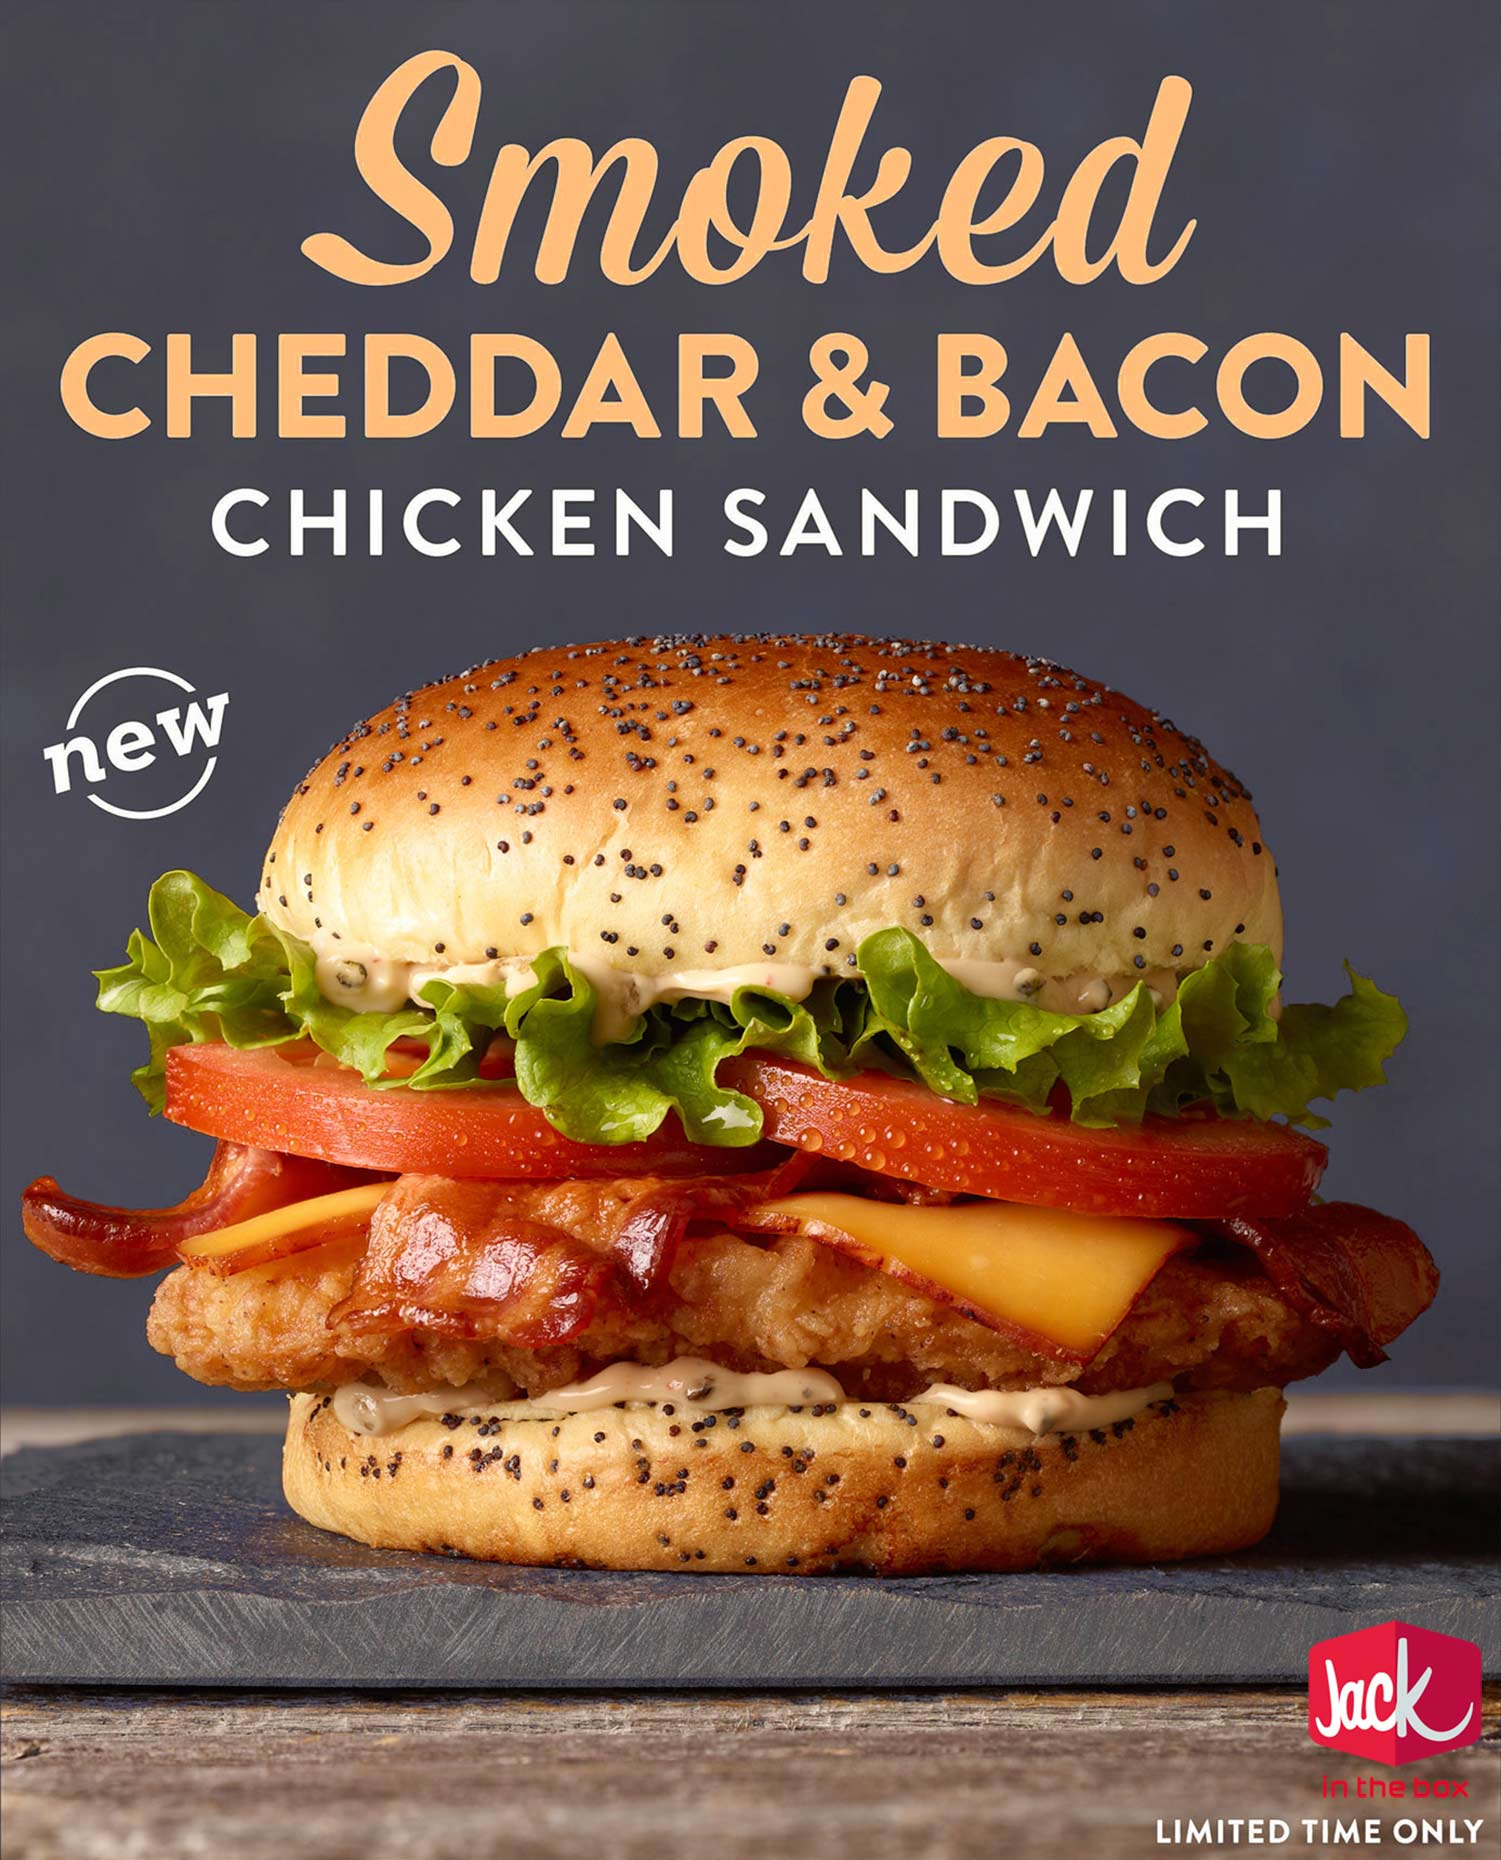 smoked_chicken_sandwich_teri_lyn_fisher